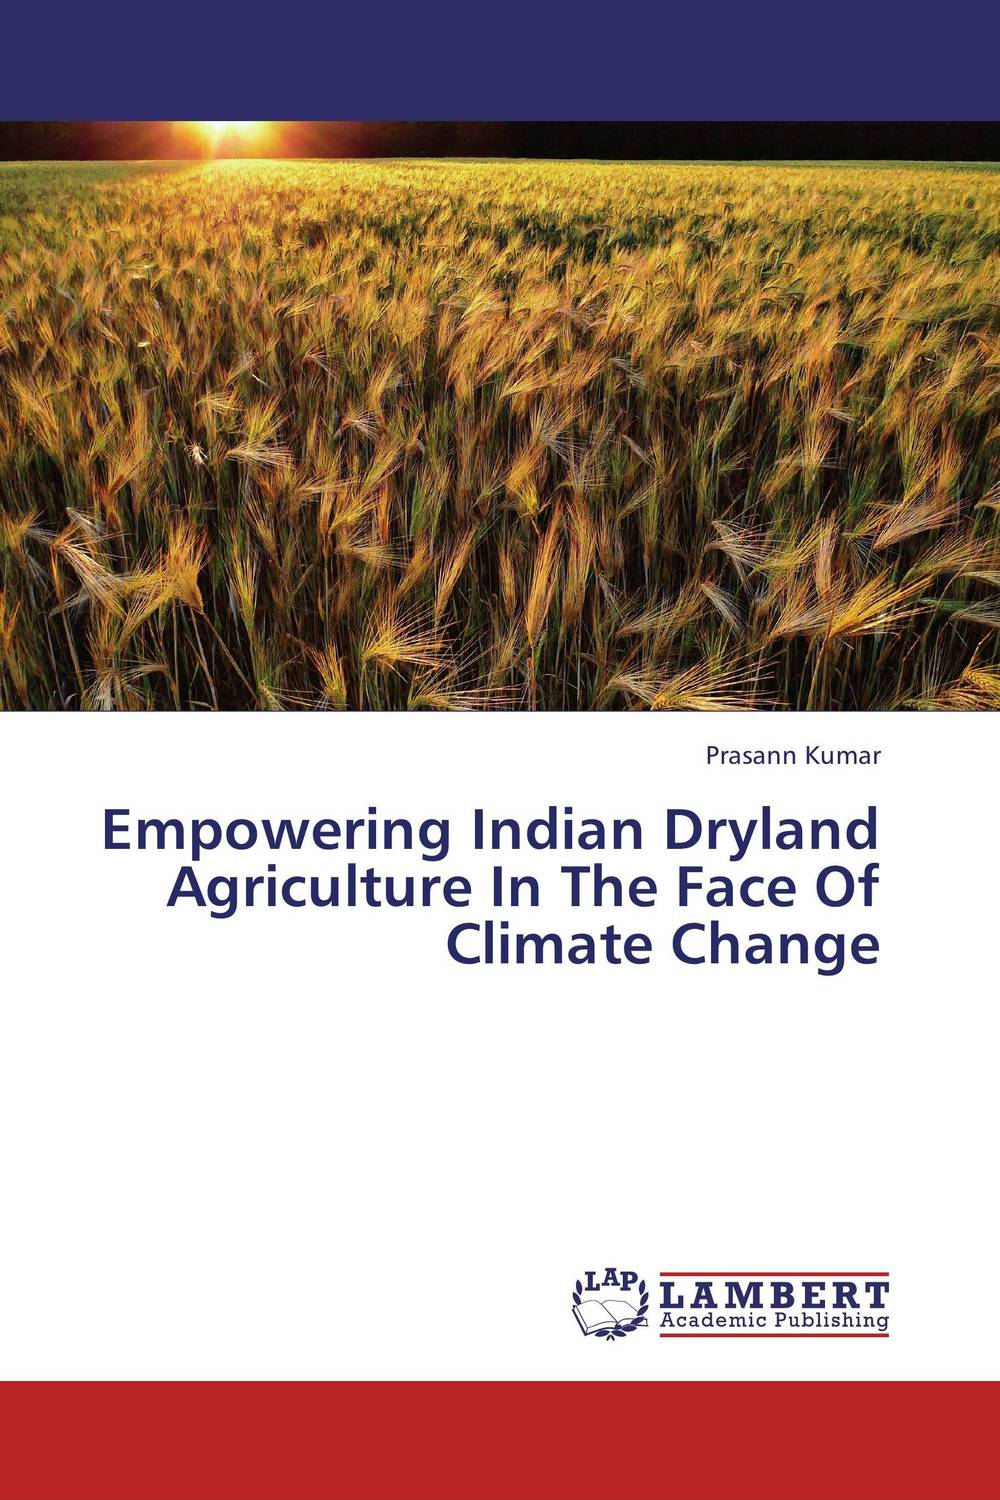 Empowering Indian Dryland Agriculture In The Face Of Climate Change pastoralism and agriculture pennar basin india